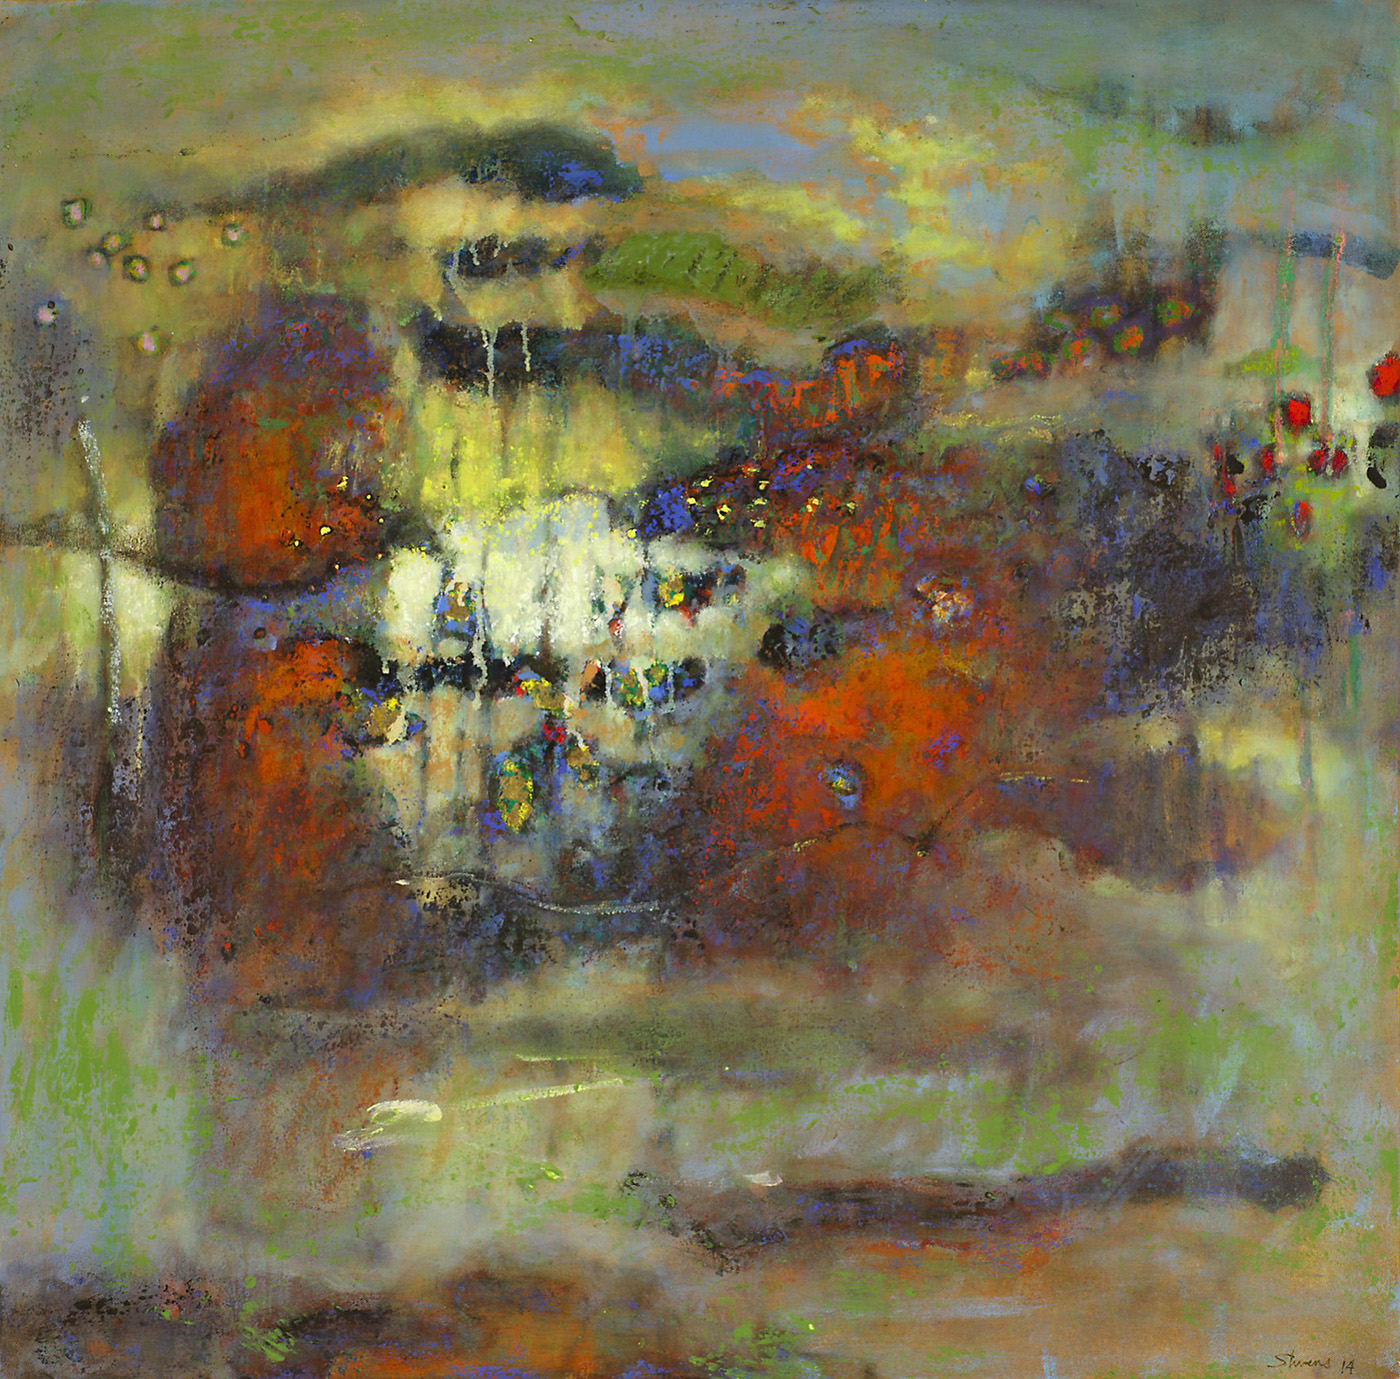 Converging Currents   | oil on canvas | 32 x 32"